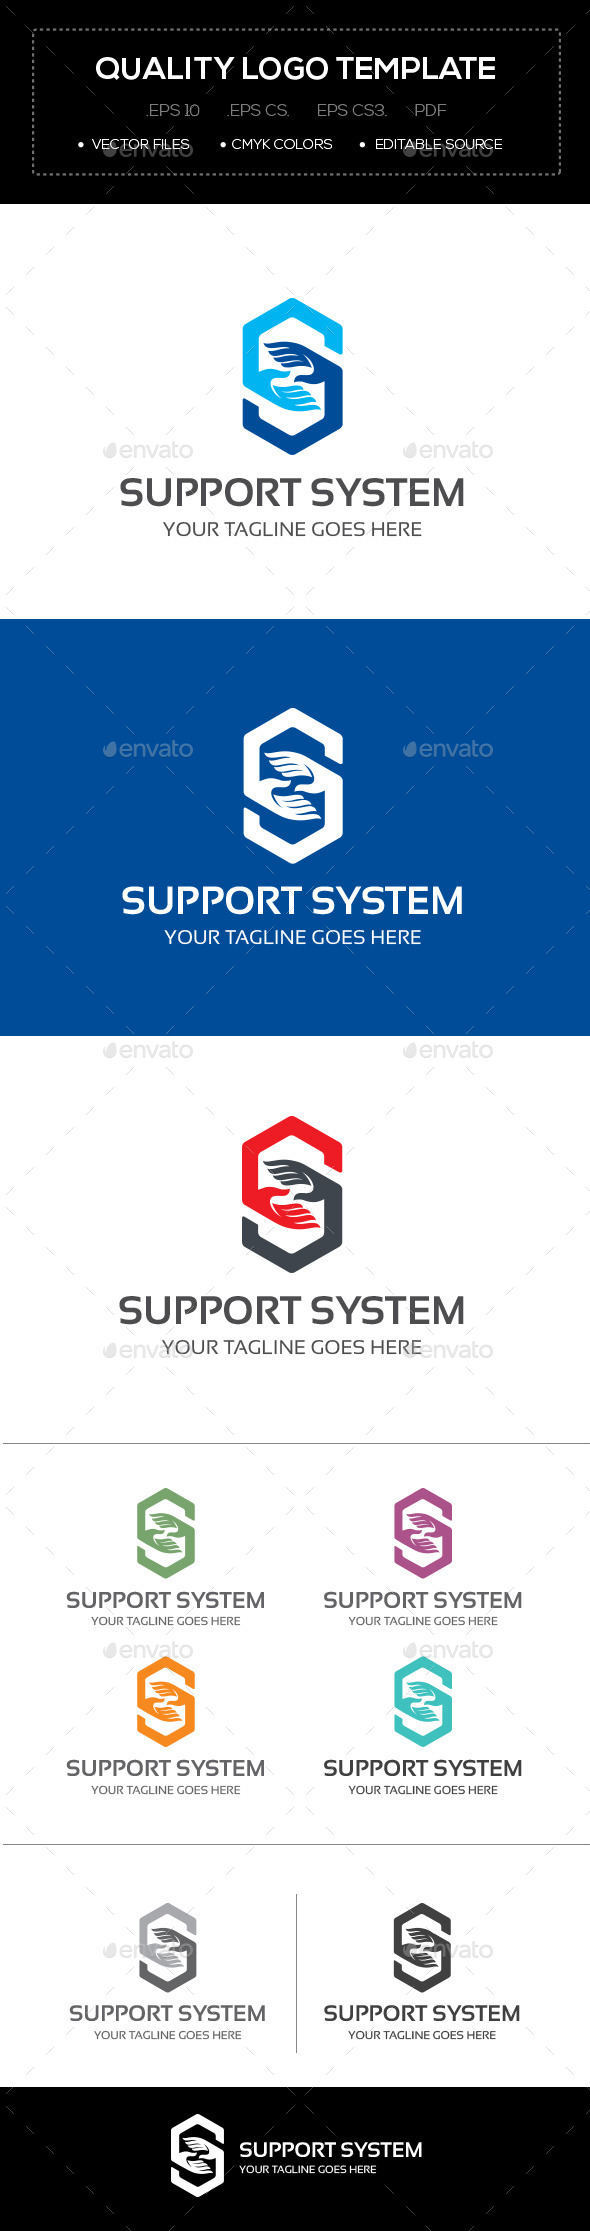 Support System Logo Template - Abstract Logo Templates